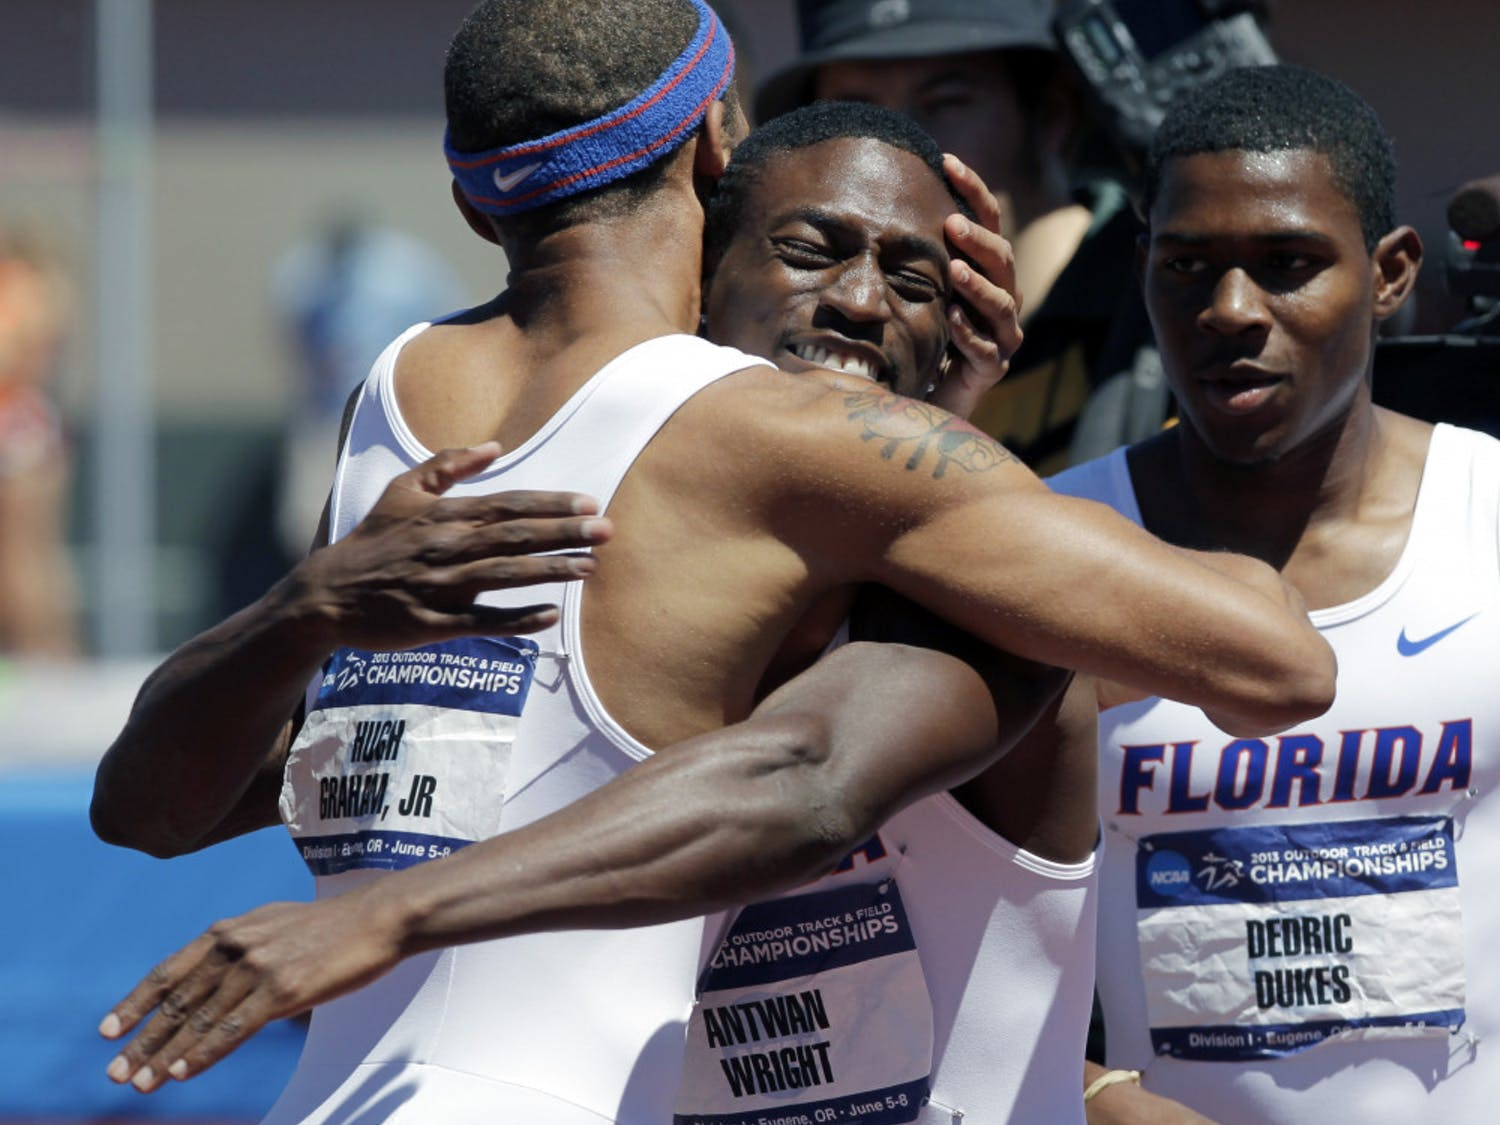 Florida's Hugh Graham Jr., left, hugs Antwan Wright as teammate Dedric Dukes looks on after winning the 4x400-meter race during the NCAA outdoor track and field championships in Eugene, Ore., Saturday, June 8, 2013. Florida tied with Texas A&M for the men's championship.